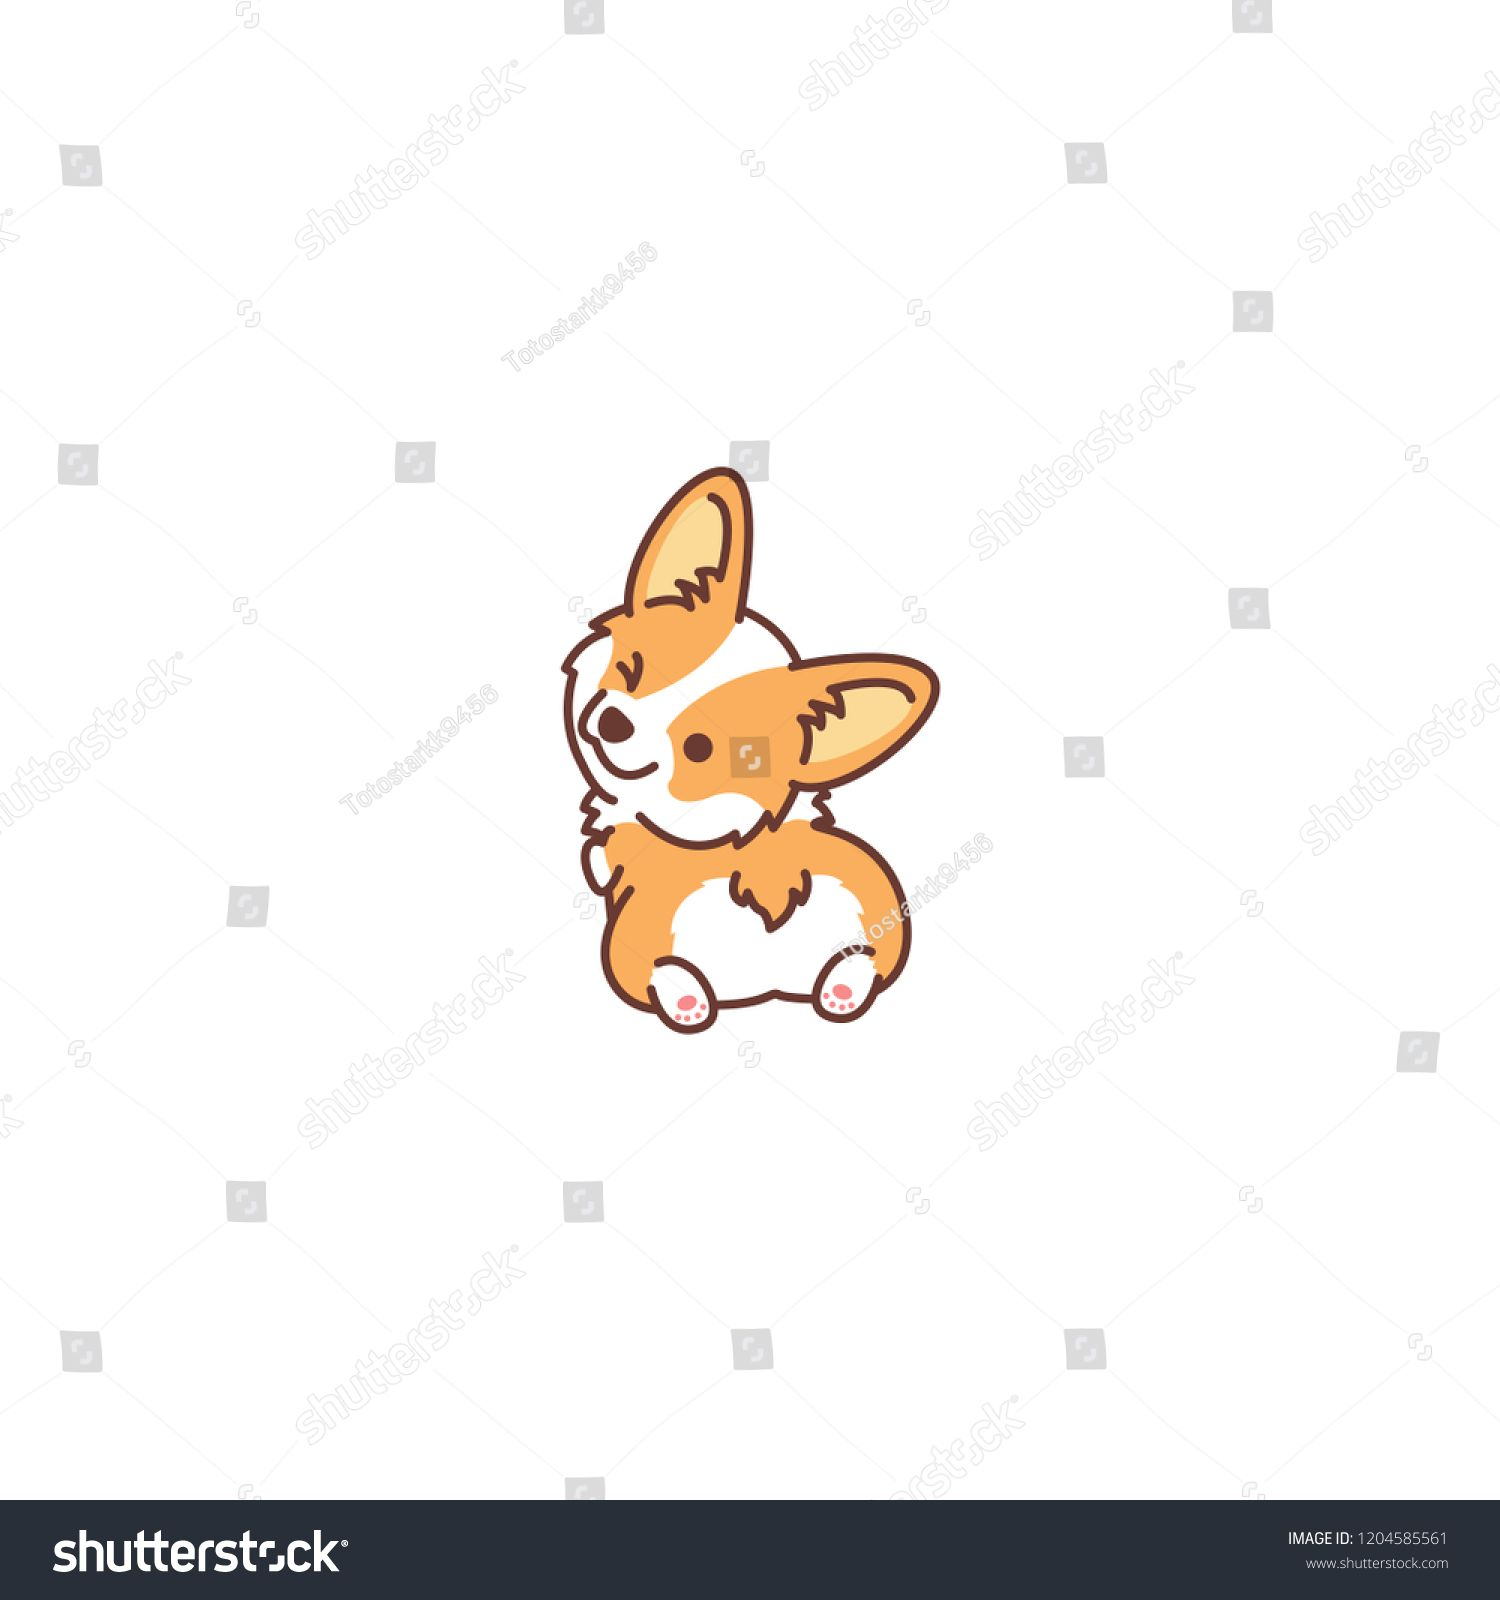 Cute Corgi Dog Looking Back And Winking Vector Illustration